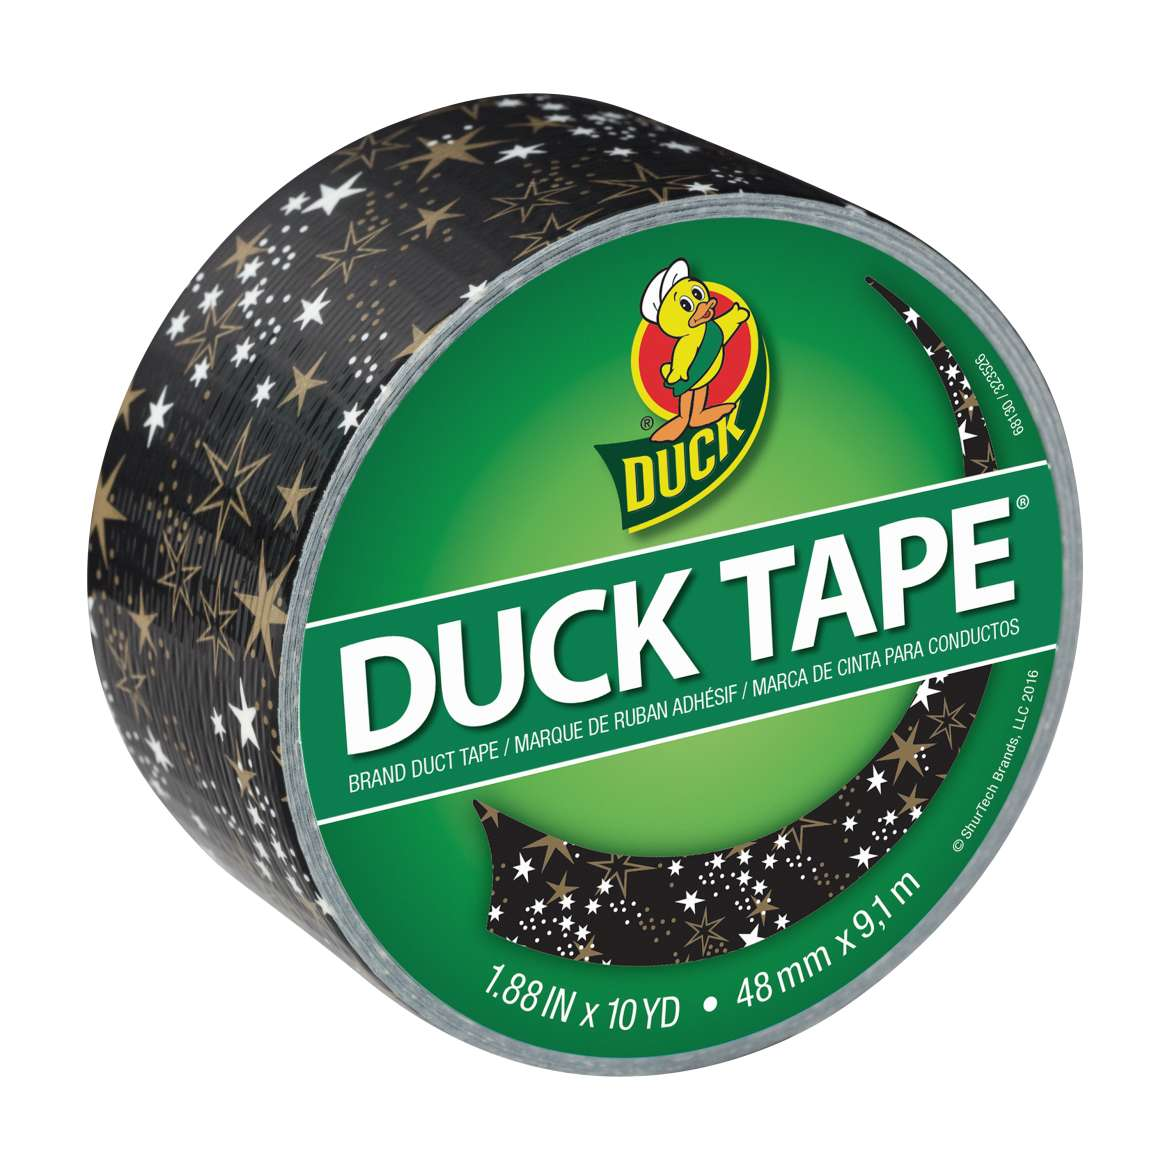 Printed Duck Tape® Brand Duct Tape - Metallic Gold Stars, 1.88 in. x 10 yd. Image